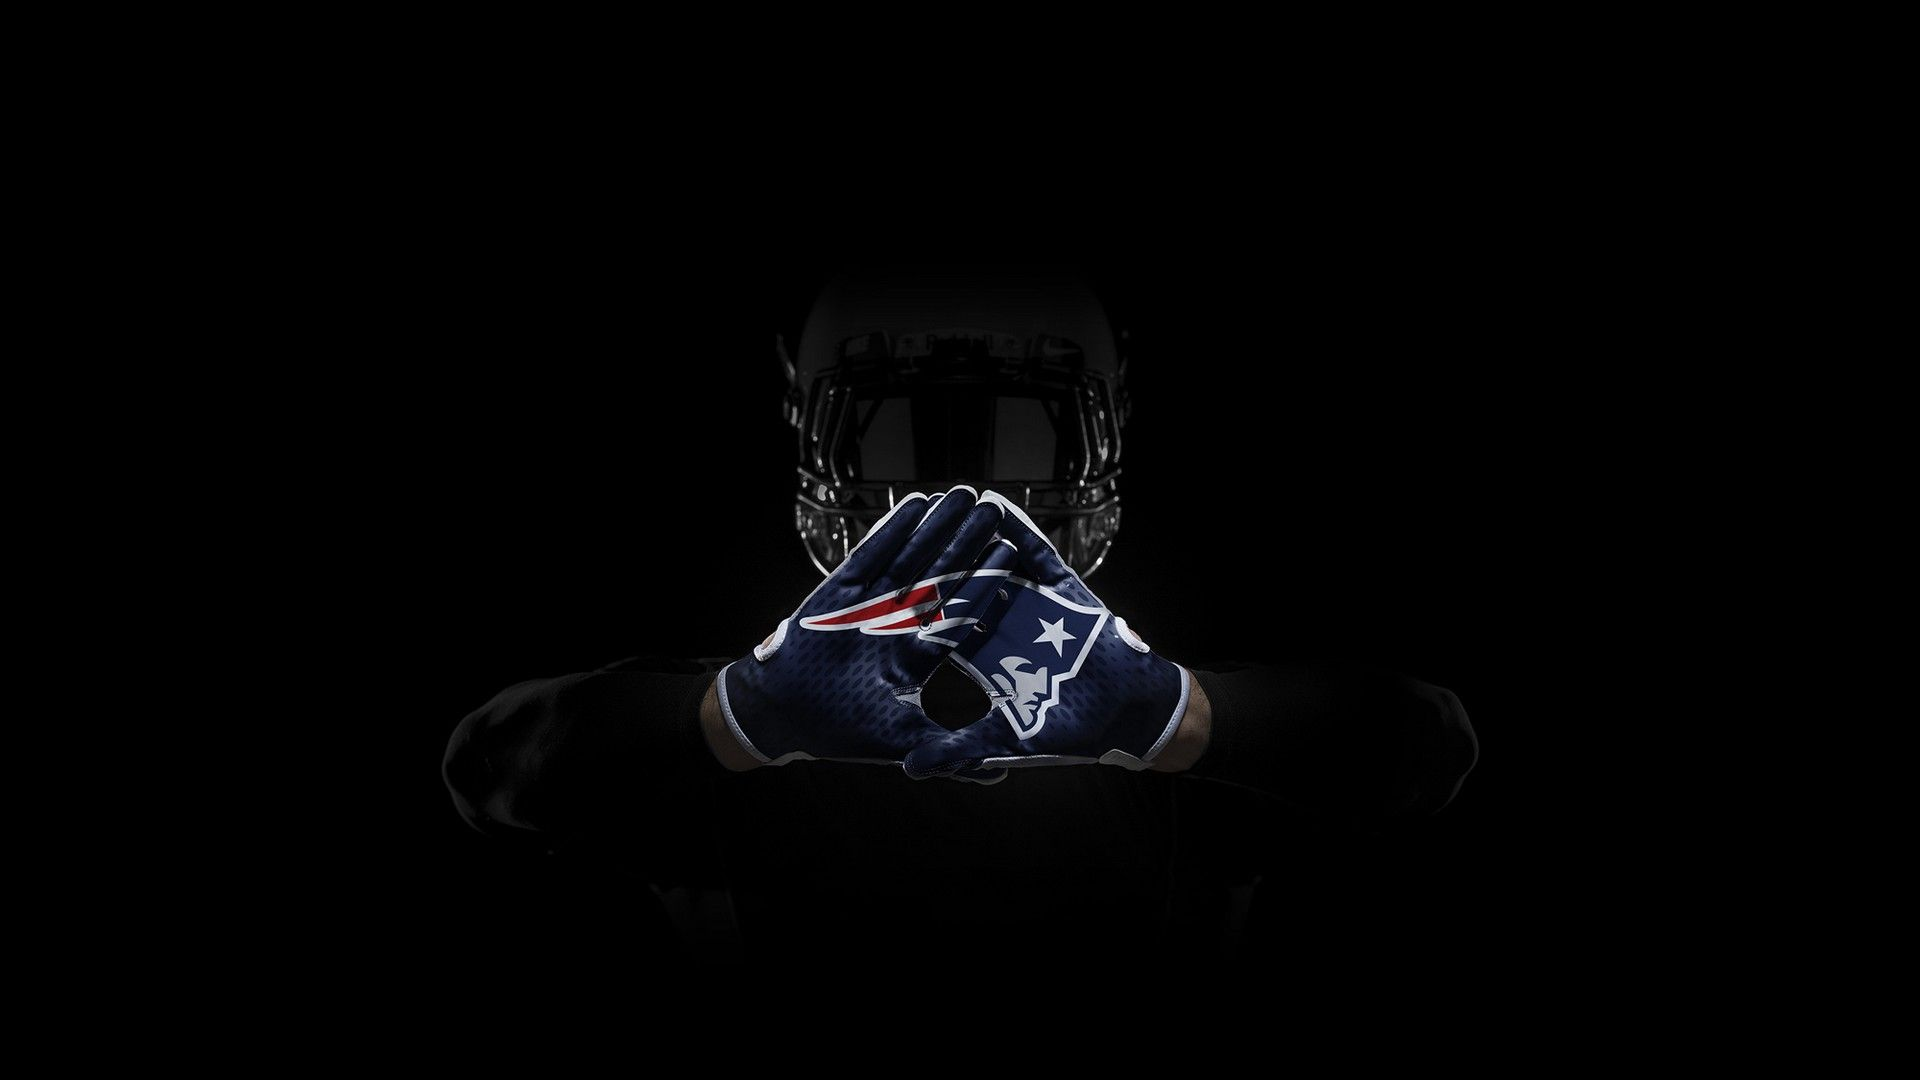 Nfl Wallpapers New England Patriots New England Patriots Wallpaper Patriots